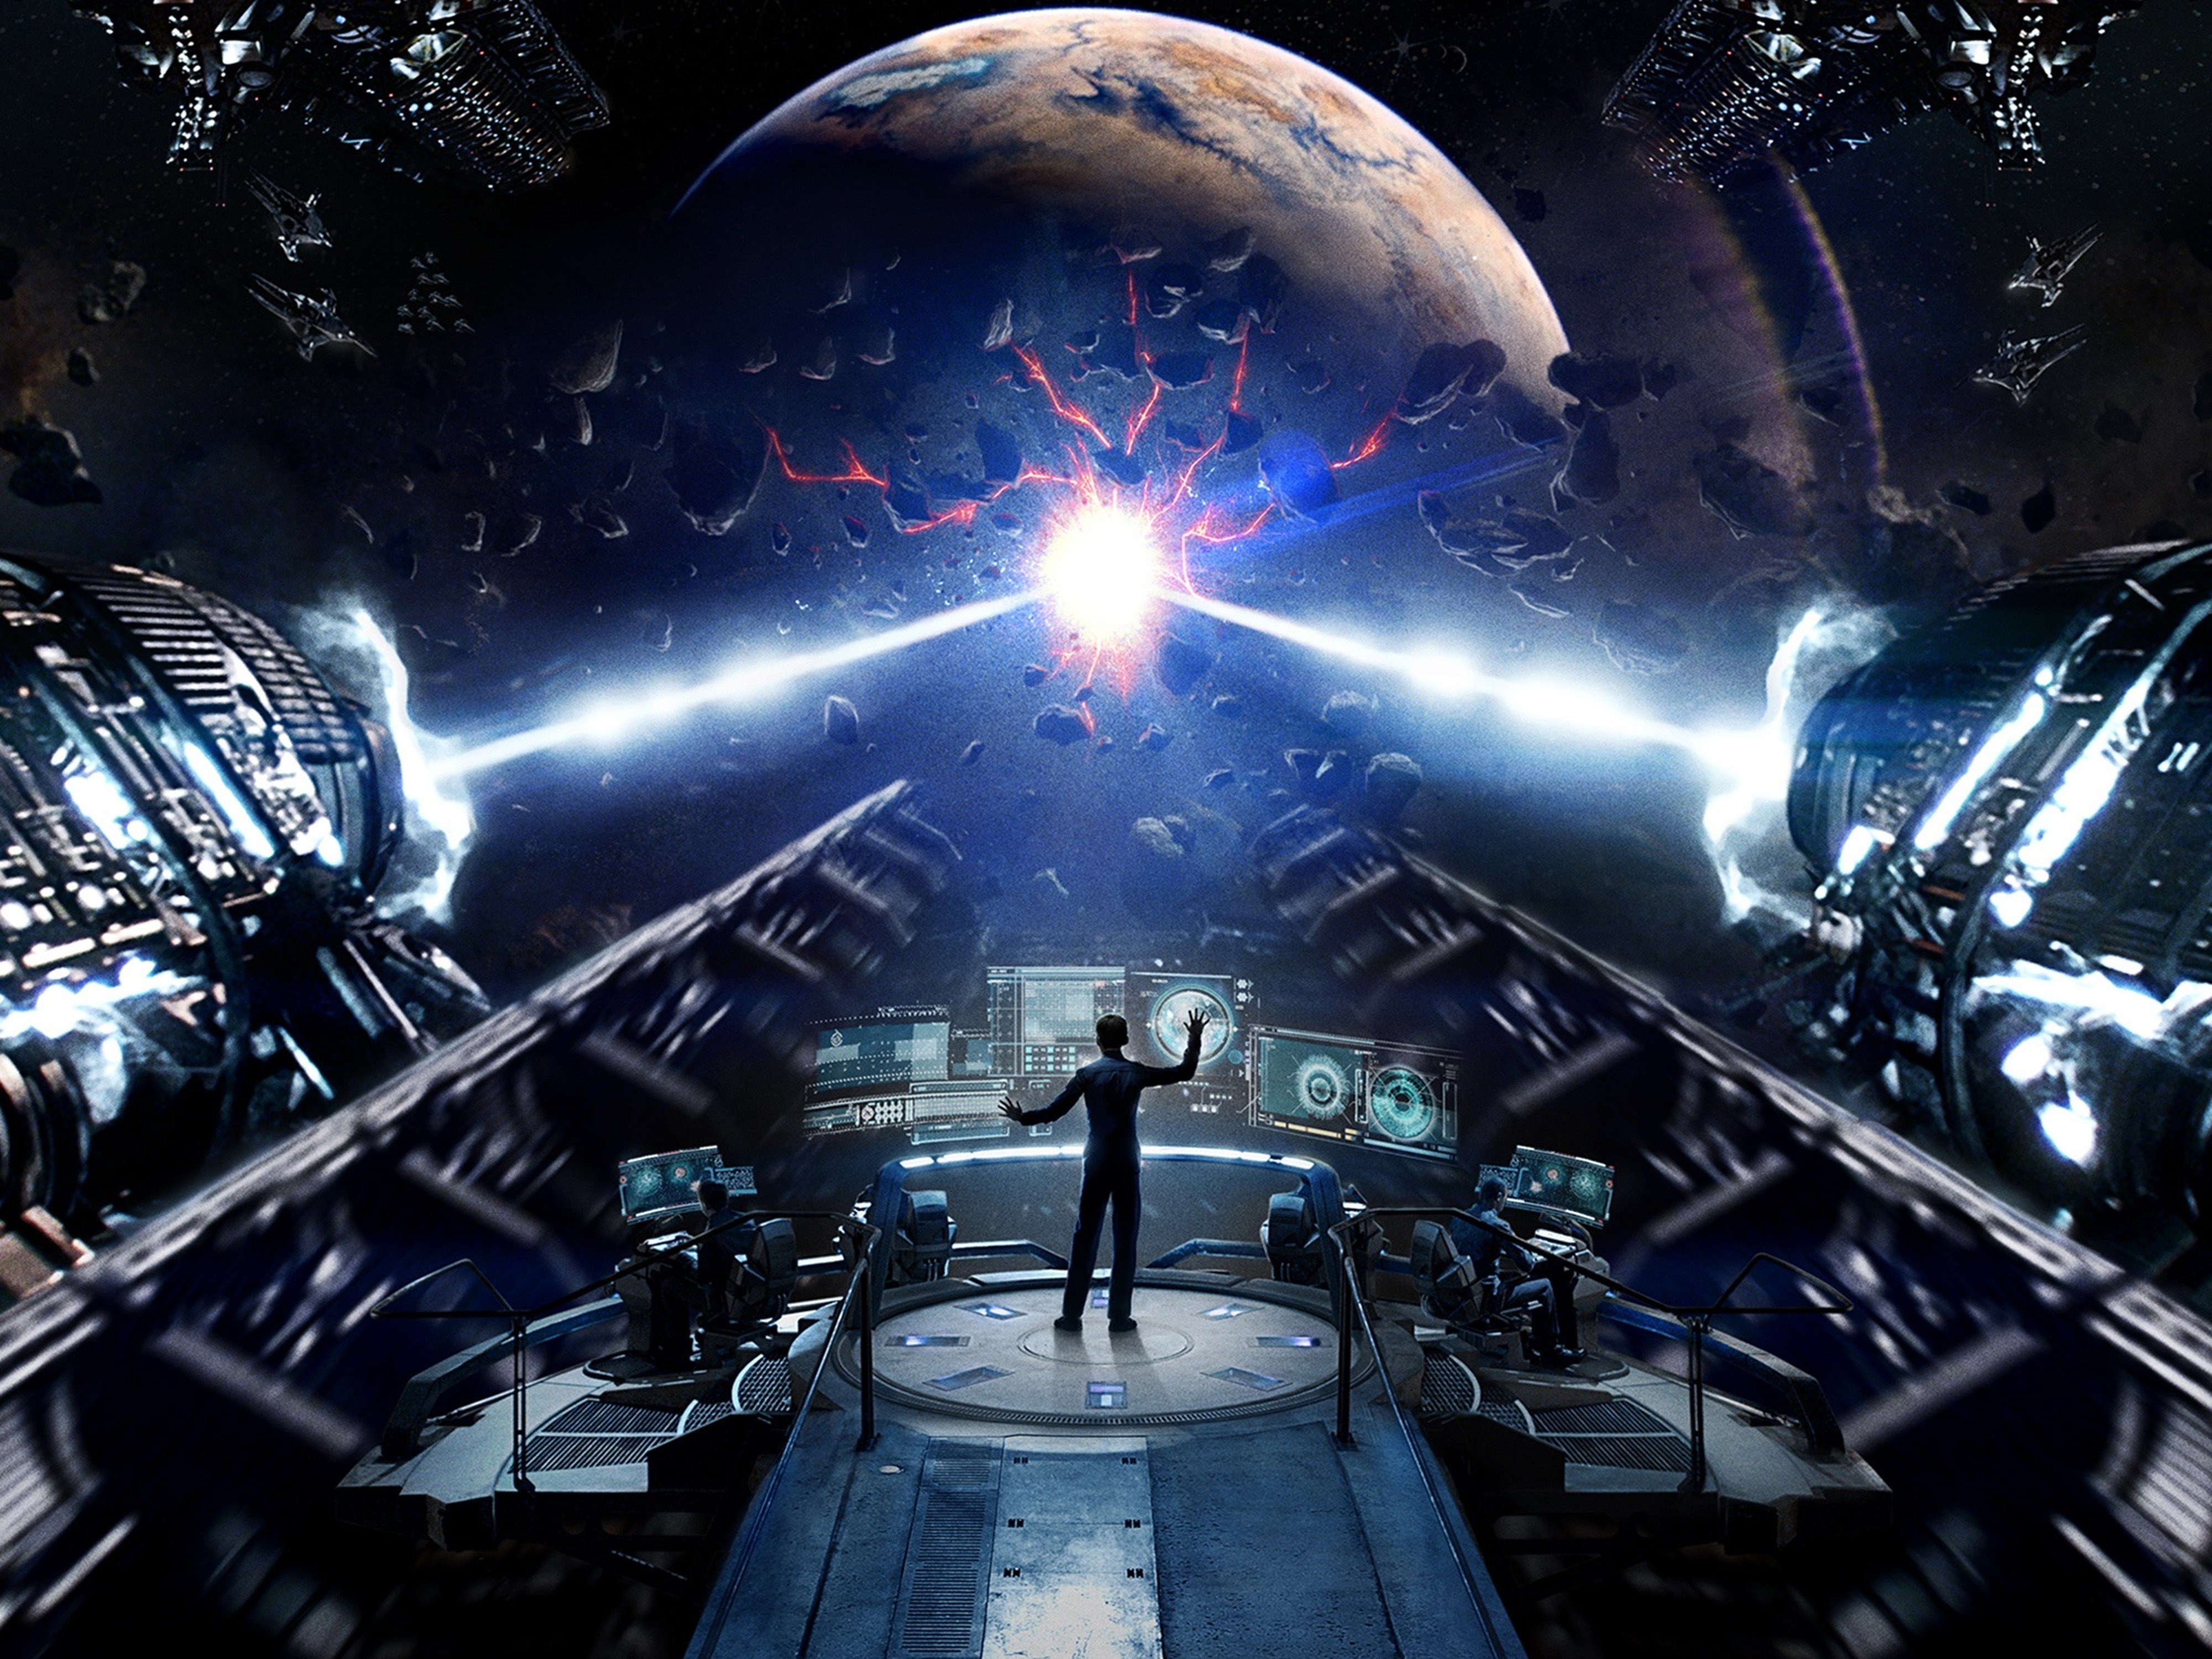 enders game advancement of warfare And thomas enders is chief of  what the warfare and power center talk is  again the advancement of war hits a wall that tax payers sweated blood for and the.